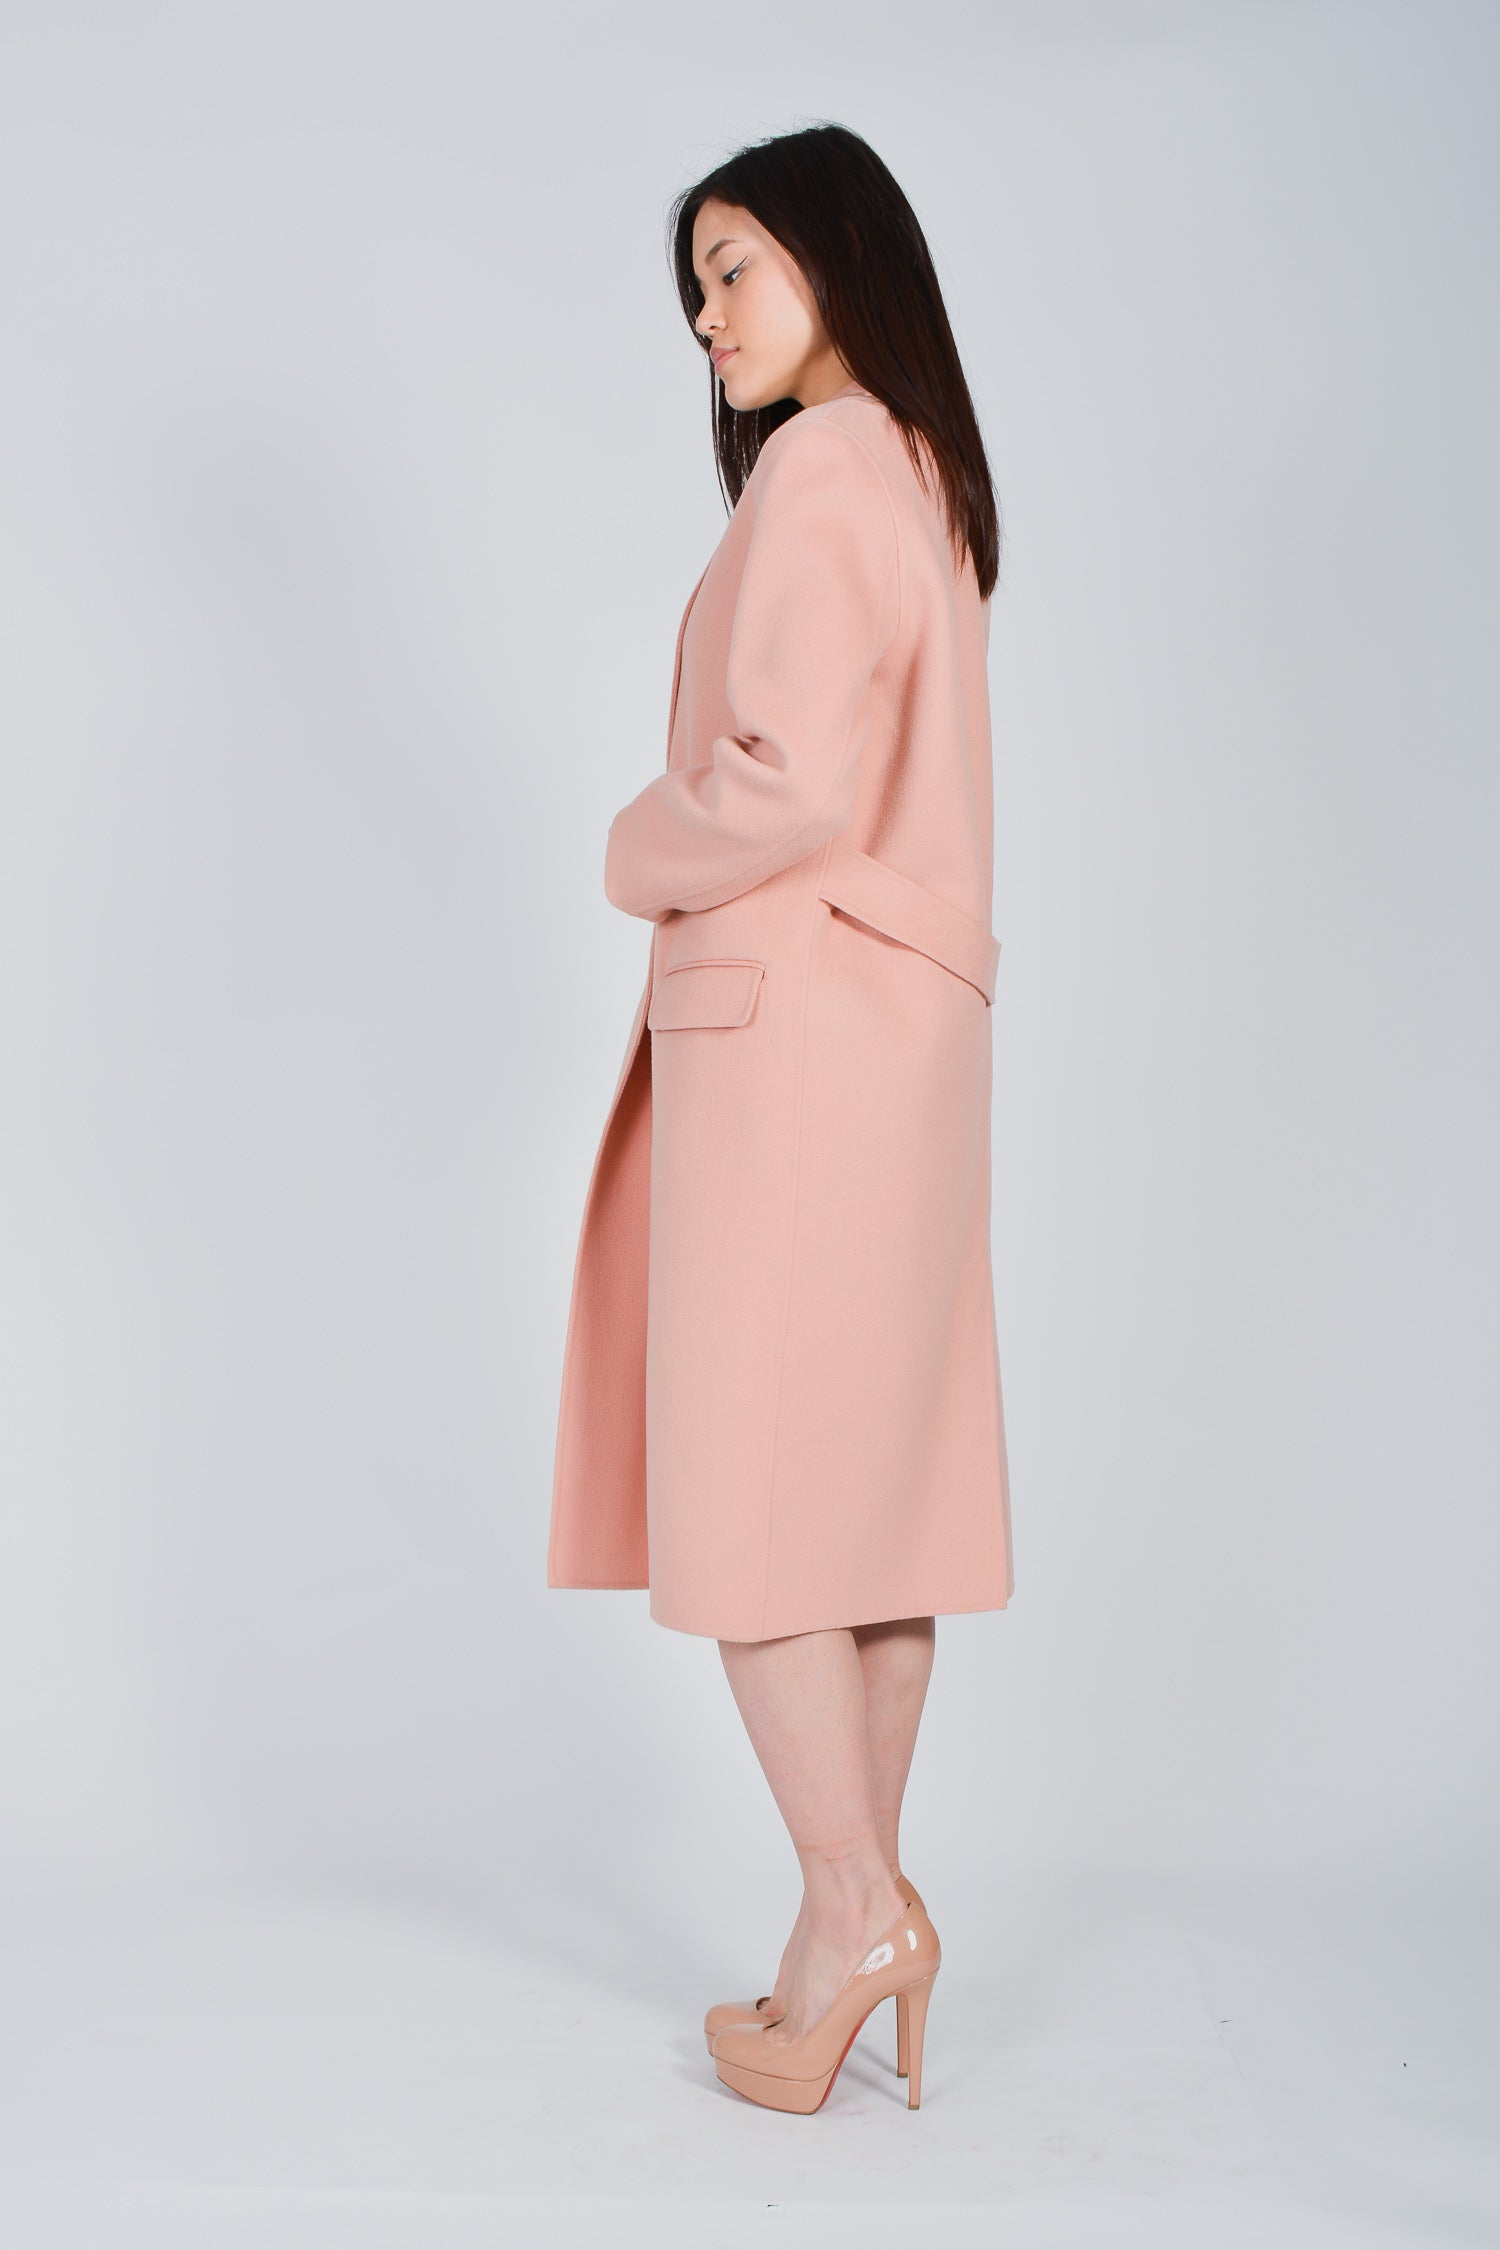 Mackage Pink Wool Hens Coat Size Small